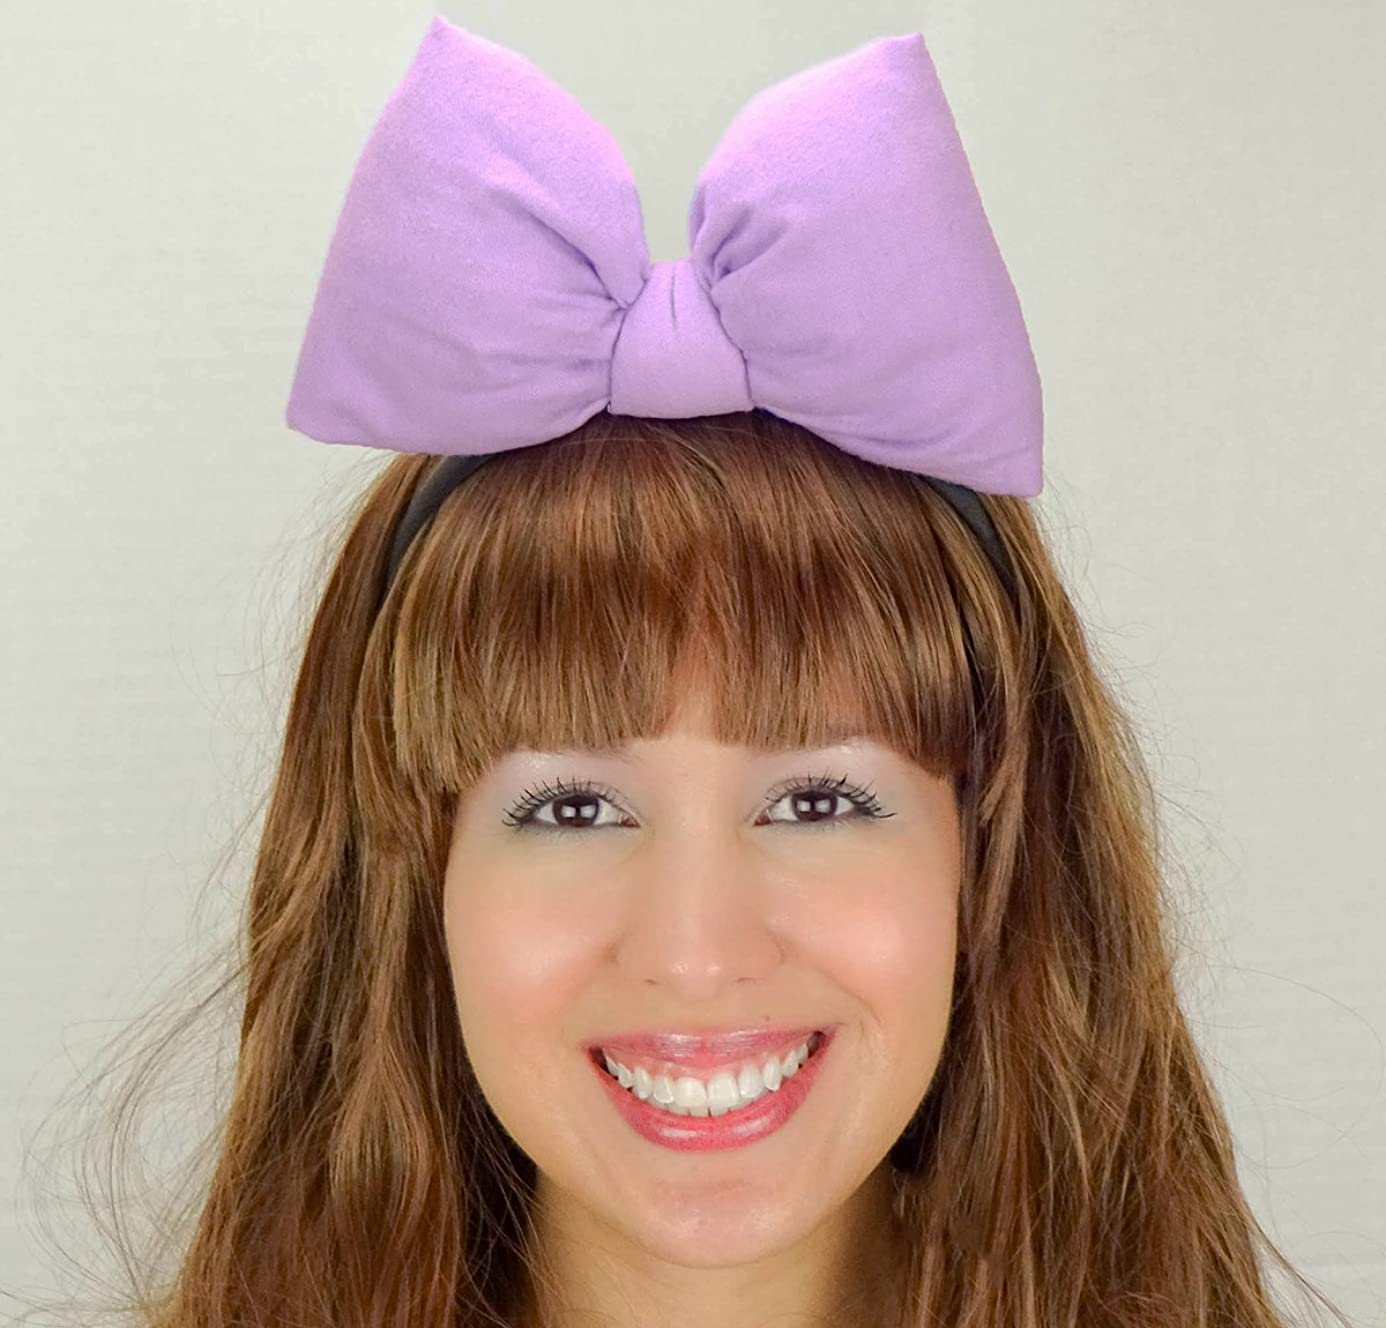 Light Purple Daisy Duck Bow Headband Minnie Mouse Inspired Handmade Hair Accessory by Sweet in the City mfq5830684